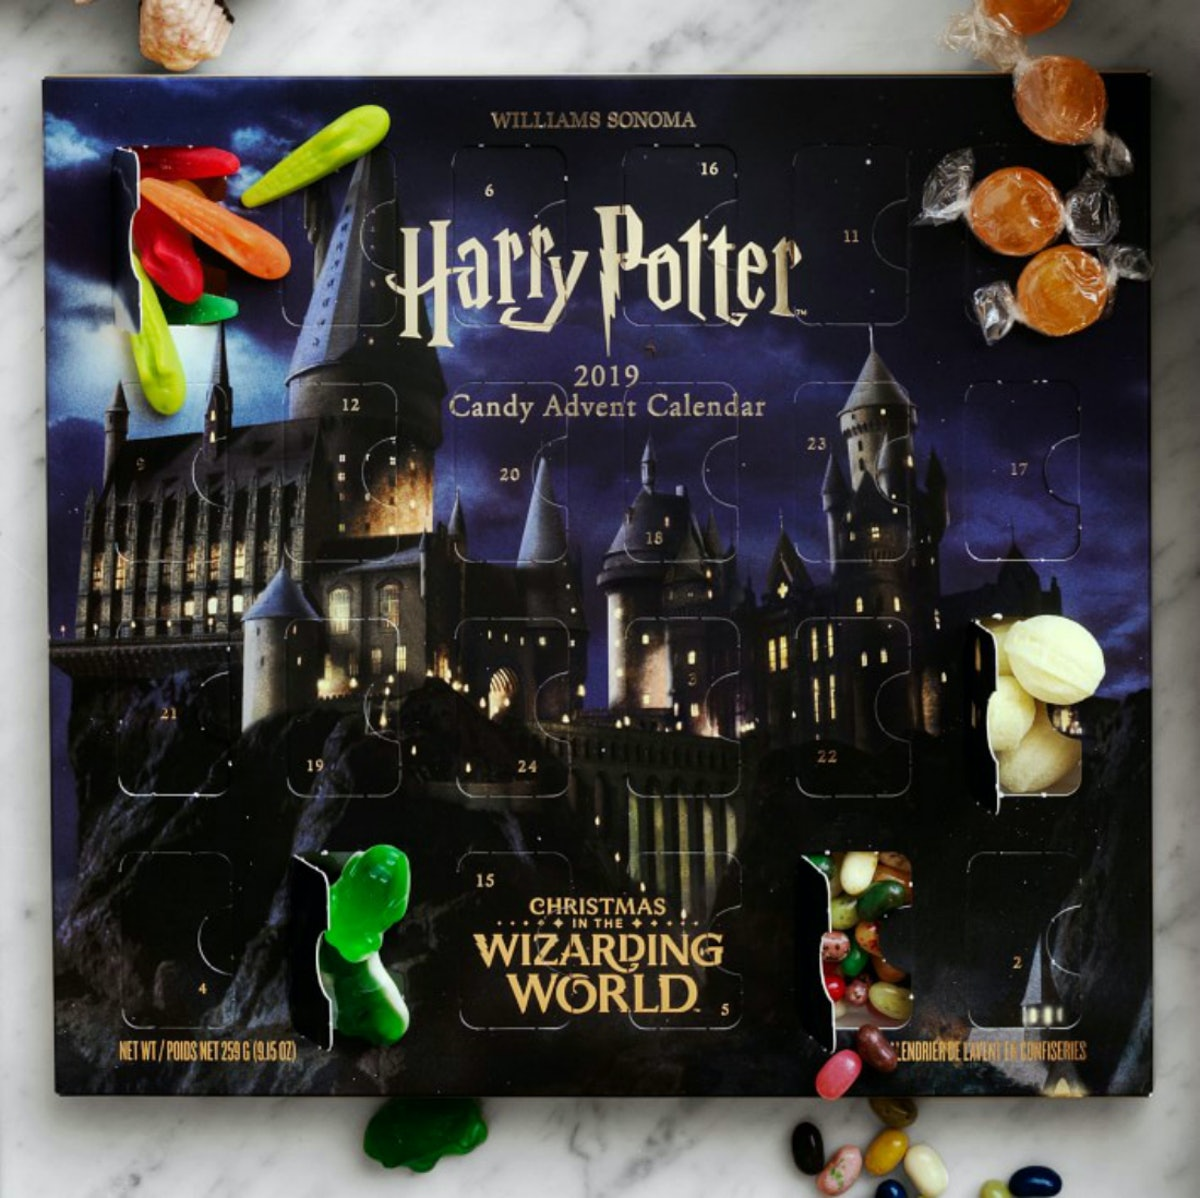 This Harry Potter Advent Calendar from Williams Sonoma is the ultimate potter fan's candy treat for ...